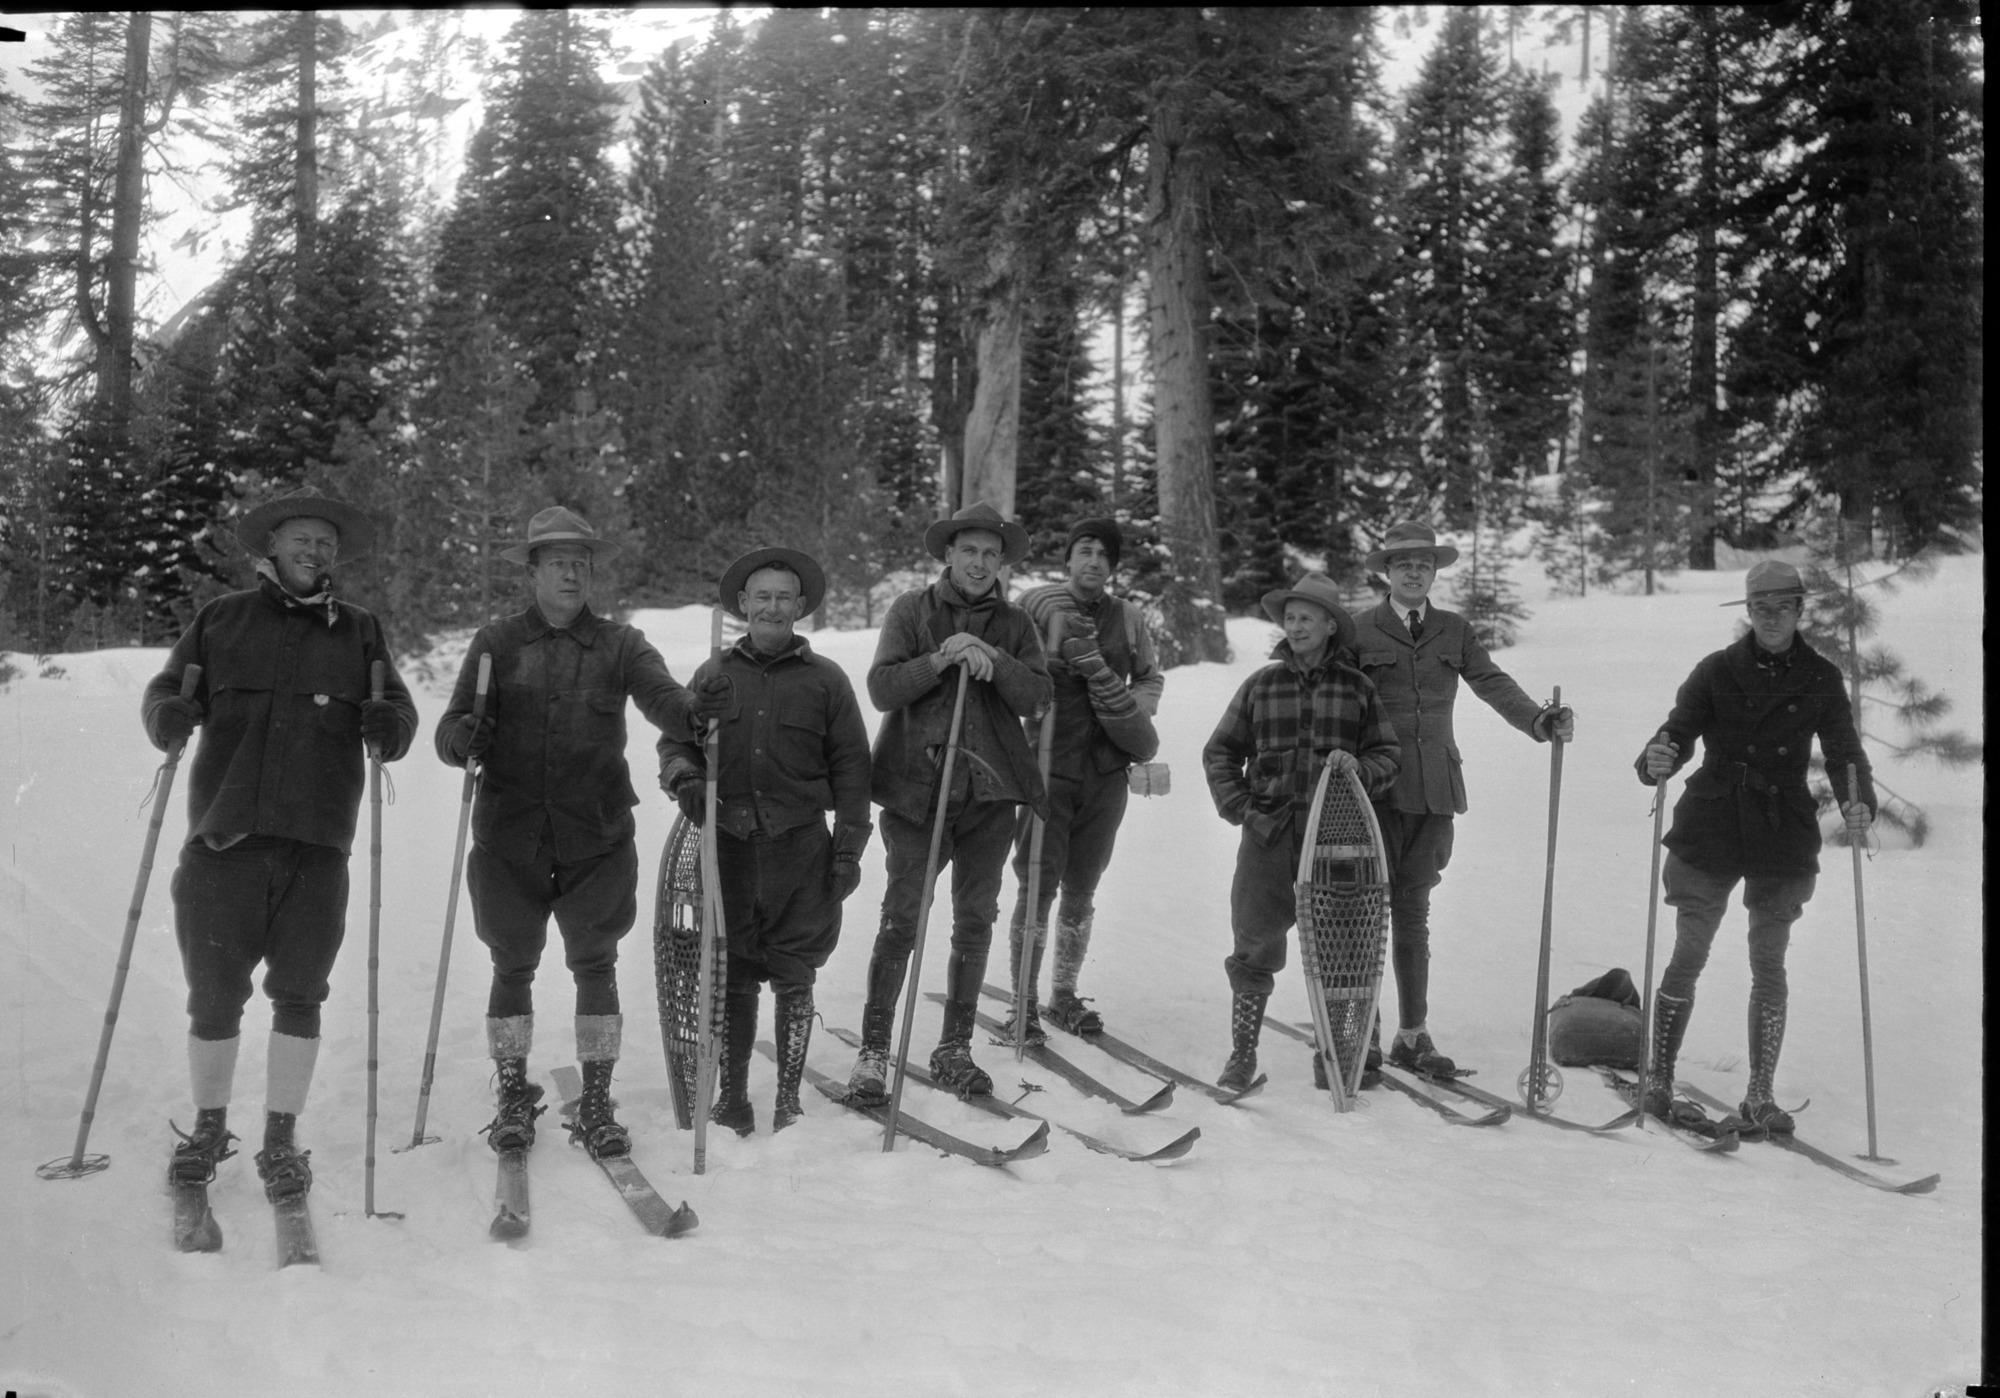 Ski party: L-R Chief Townsley, O.G. Taylor, Chas Adair, Dick Freeland, John Wegner, ?, Carl Russell, Sam Clark [attached to photo card] Stone Photo: Off for the High Sierra! This party insisted on penetrating the depths of the High Sierra even when blanketed with snow averaging from seven to eleven feet in depth. Skiis and snowshoes are the prevailing means of transportation in the High Sierra region surrounding Yosemite Valley after the snow begins to fall. From James V. Lloyd, Information Ranger, Yosemite National Park, Calif. Copy Neg: Leroy Radanovich, February 1998